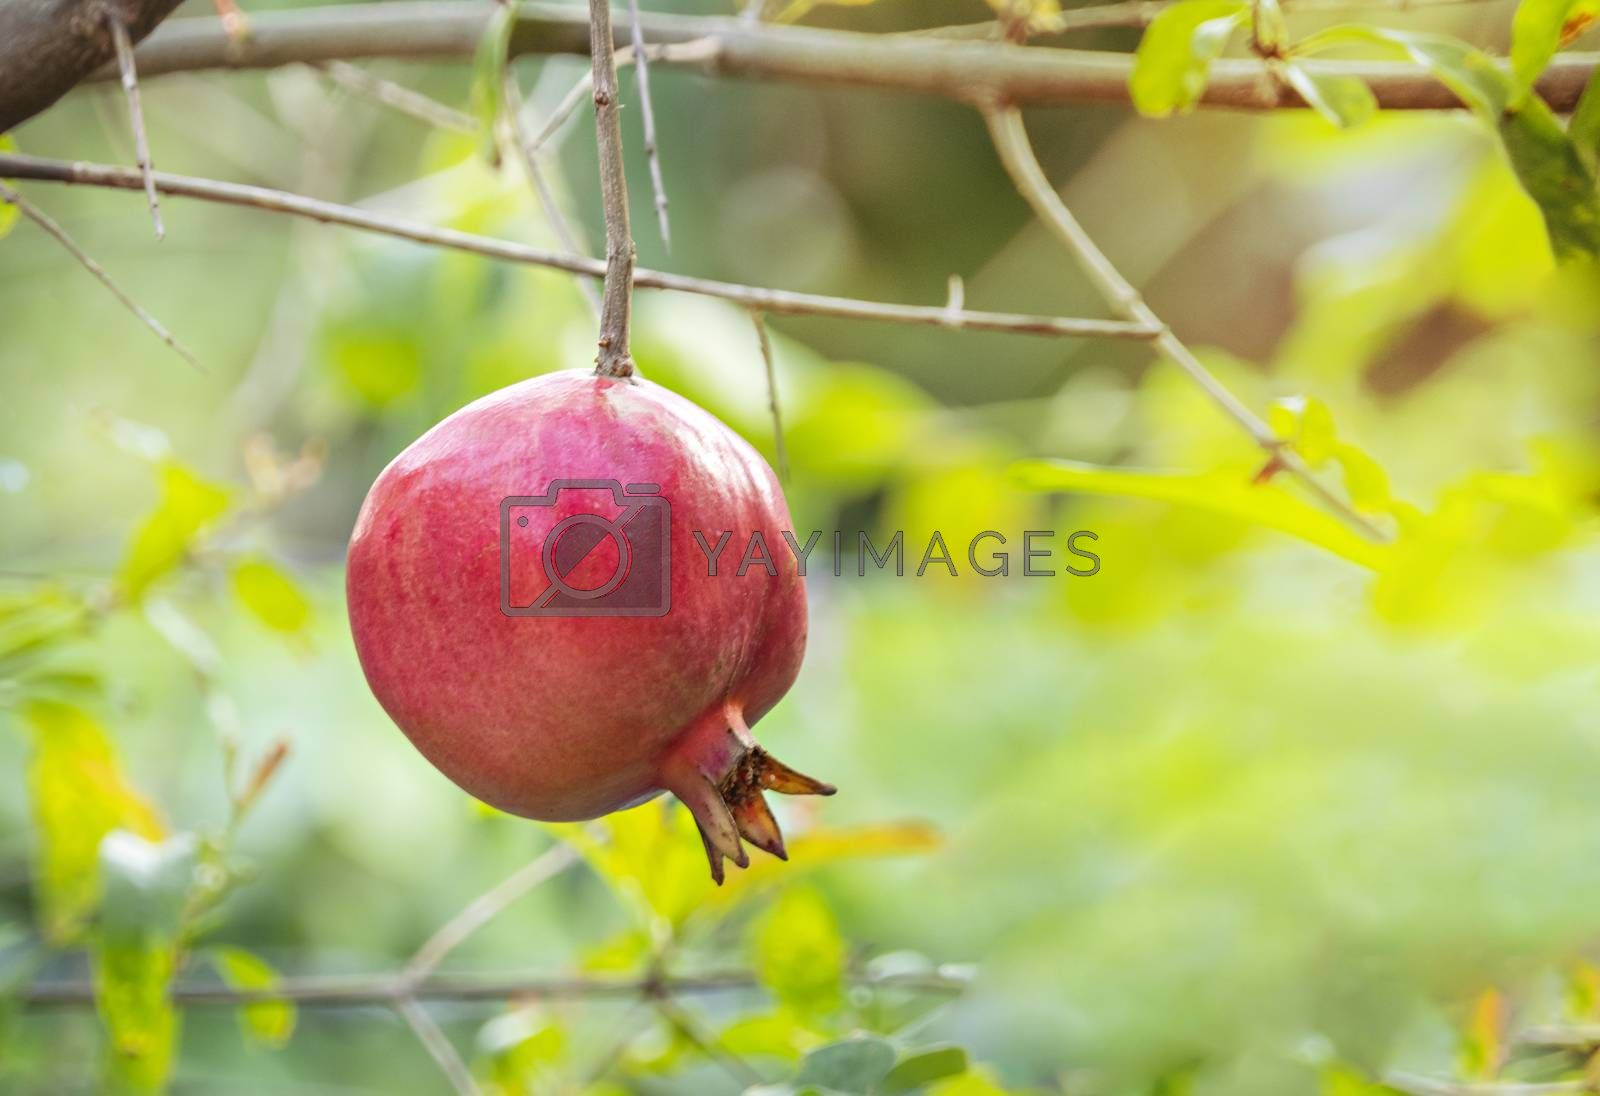 Pomegranate Fruit on Tree Branch. The Foliage on the Background